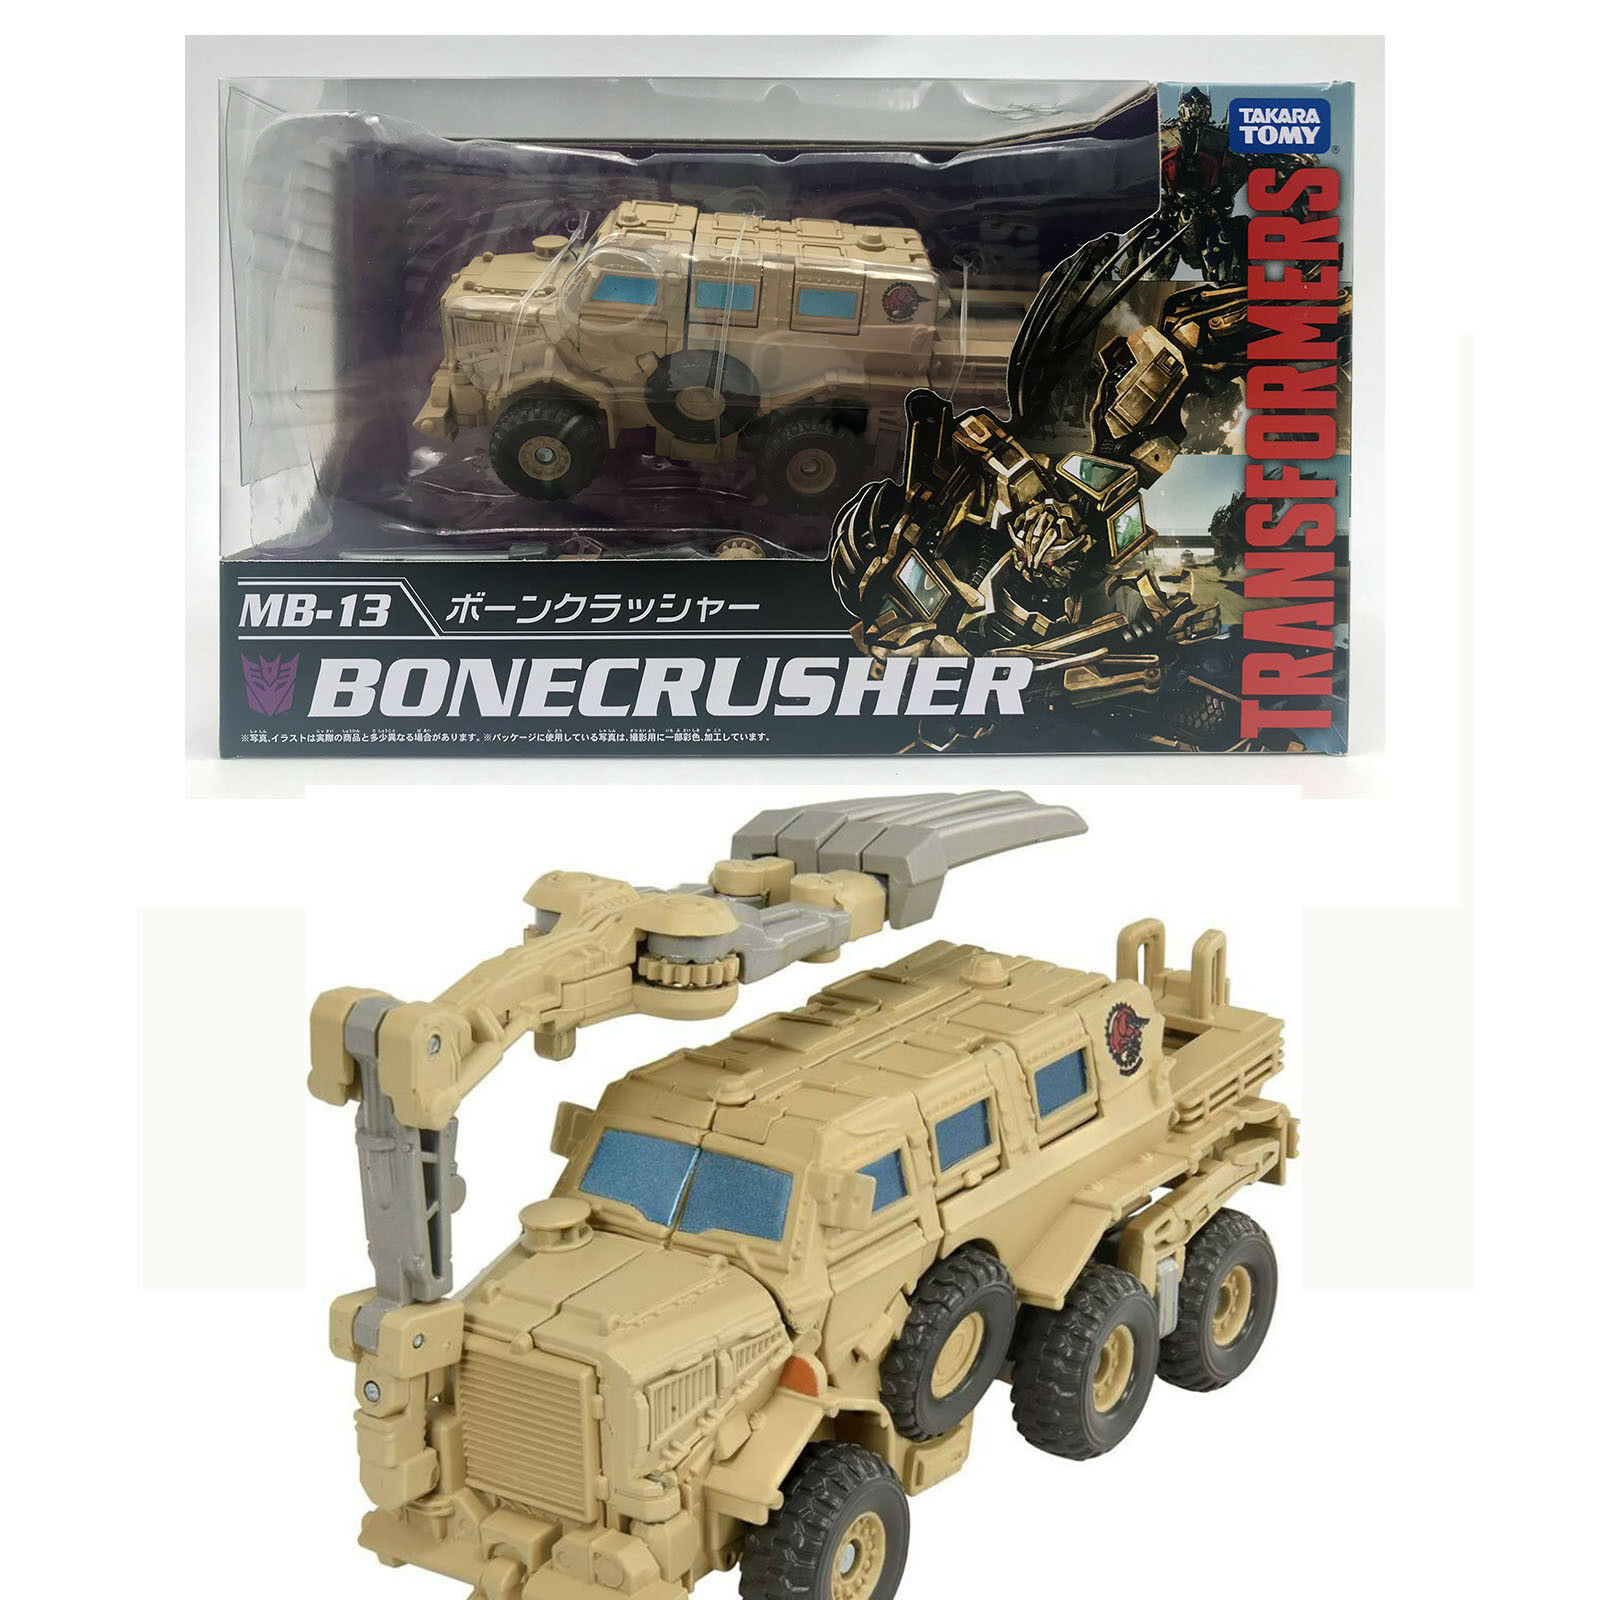 Transformers Movie The Best MB-13 MB13 BONECRUSHER D Class Action Figure *NEW*